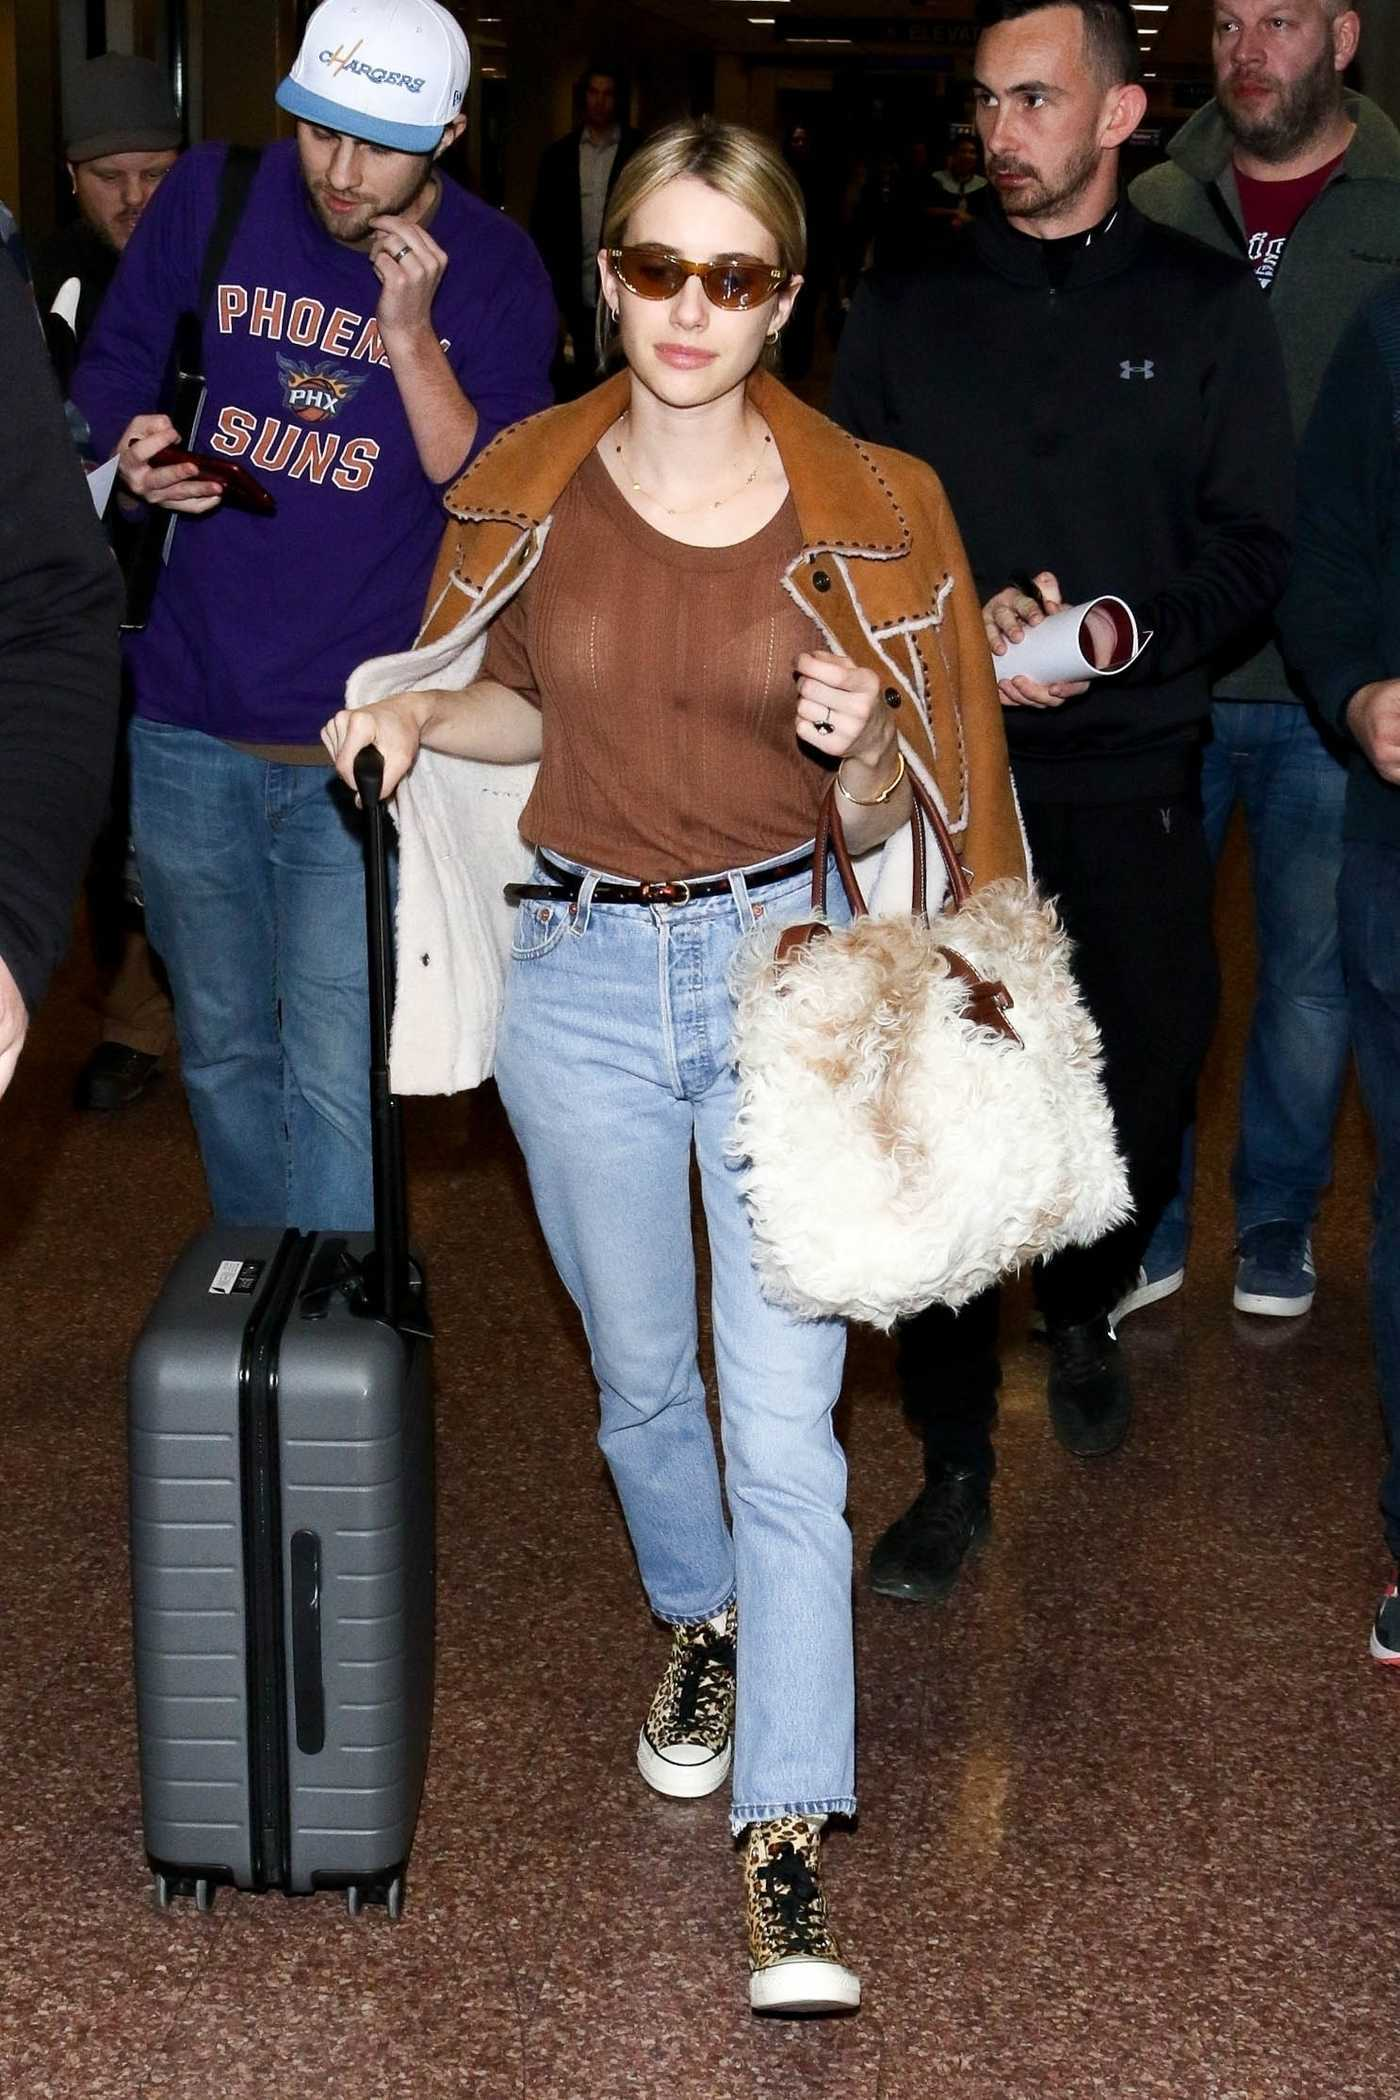 Emma Roberts in a Beige T-Shirt Arrives at Airport in Salt Lake City 01/25/2019